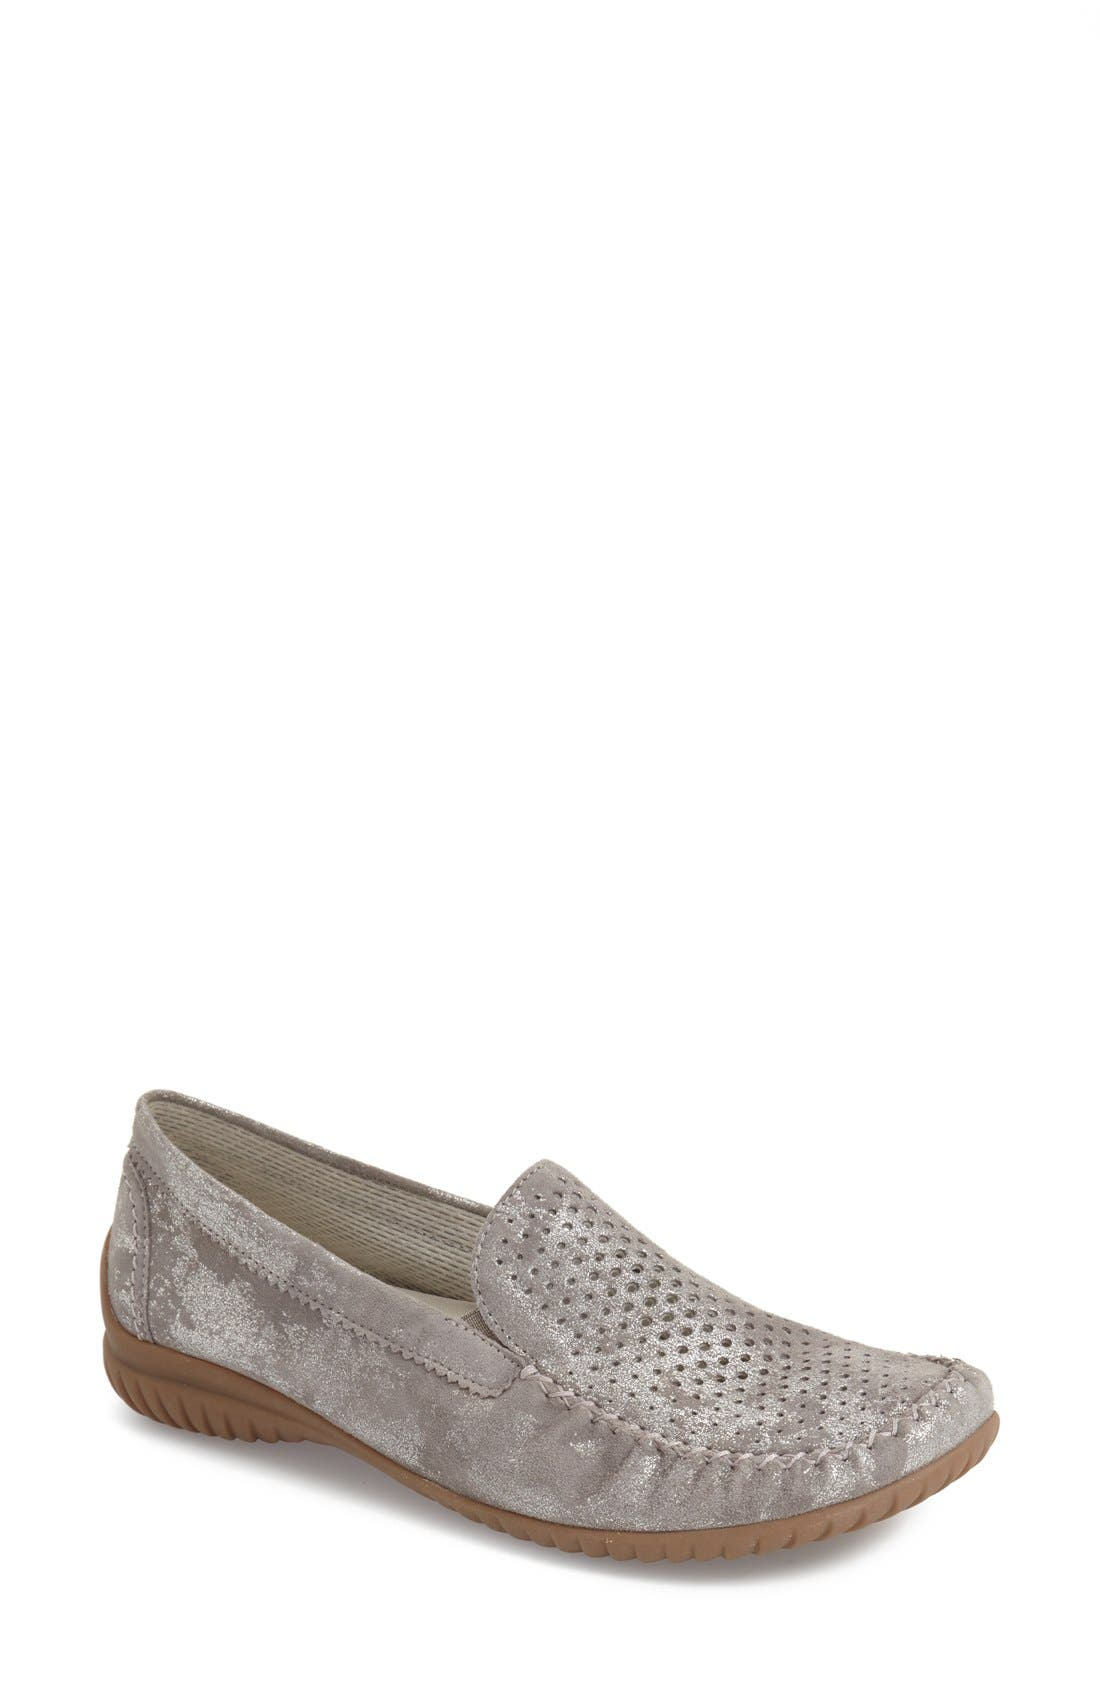 Main Image - Gabor Perforated Loafer (Women)